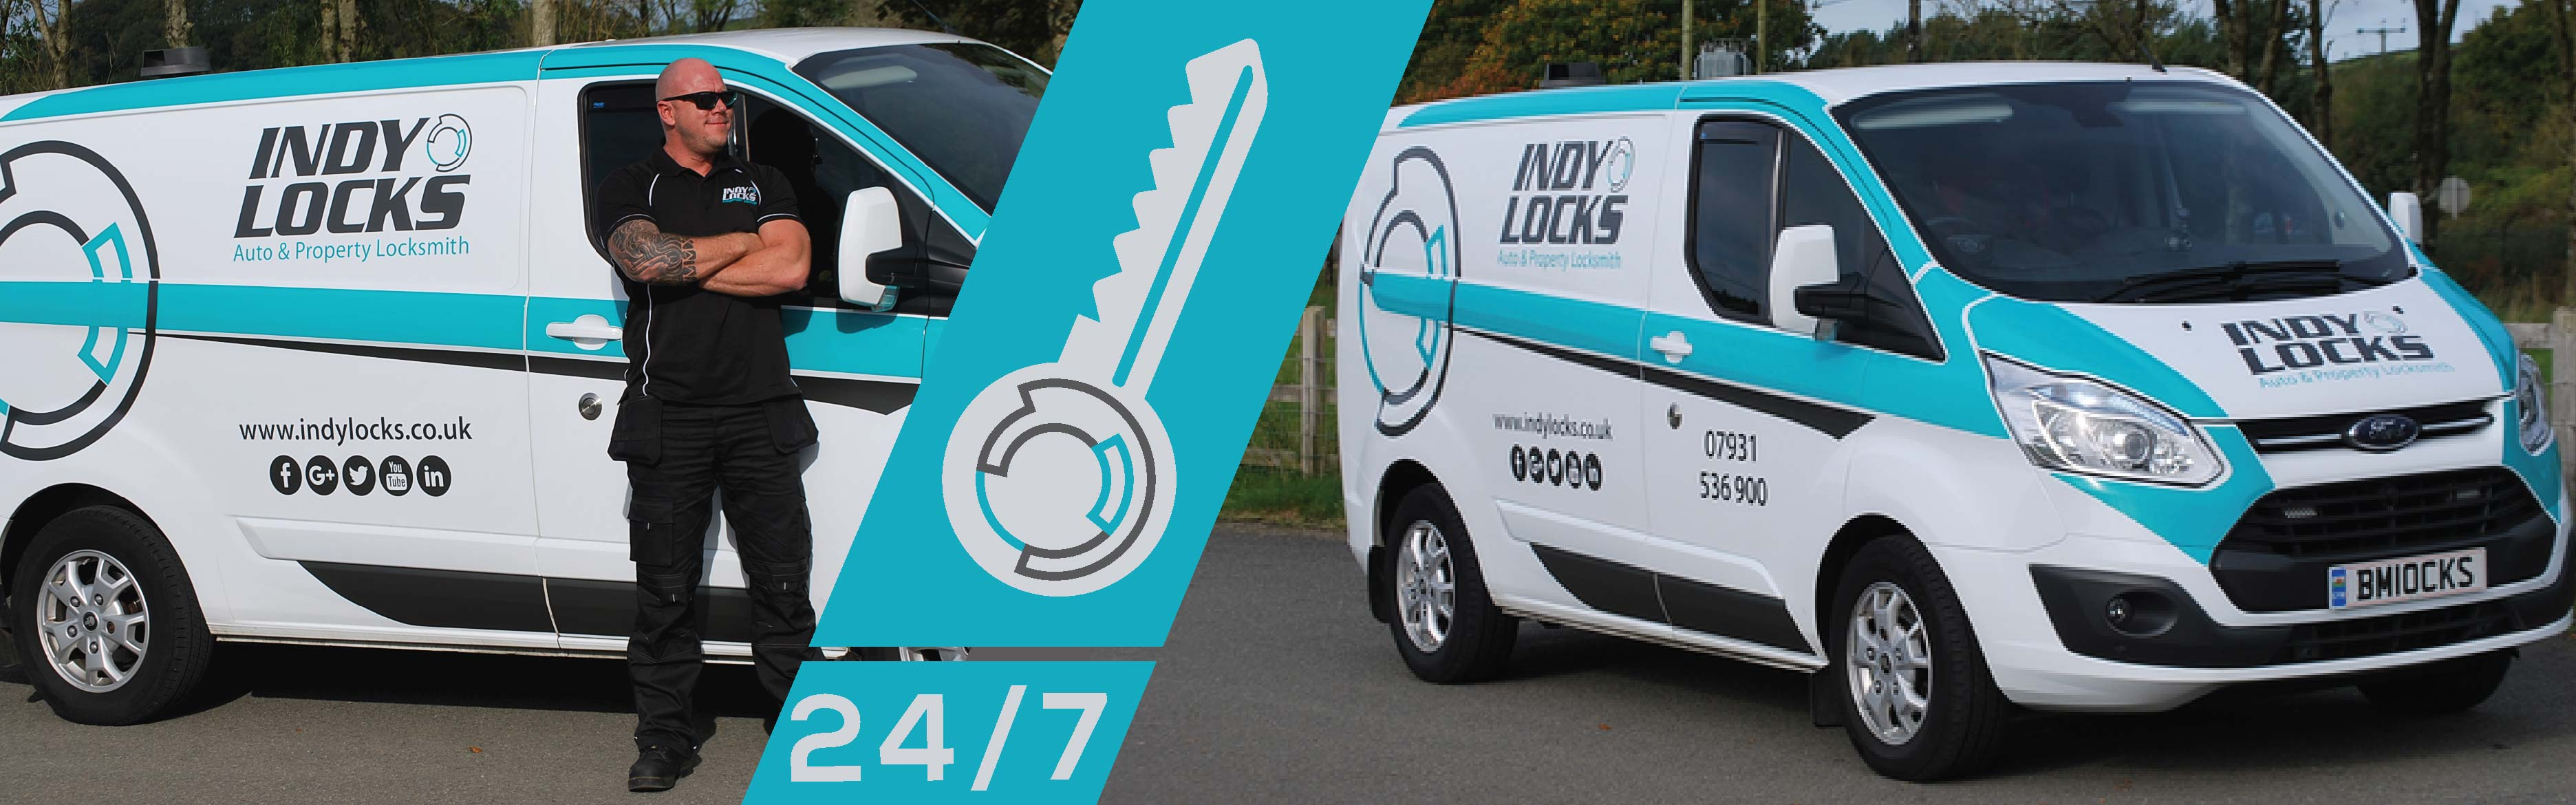 Llanelli-Locksmith-Services-Indy-Locks-Carmarthenshire-Slider-01-01